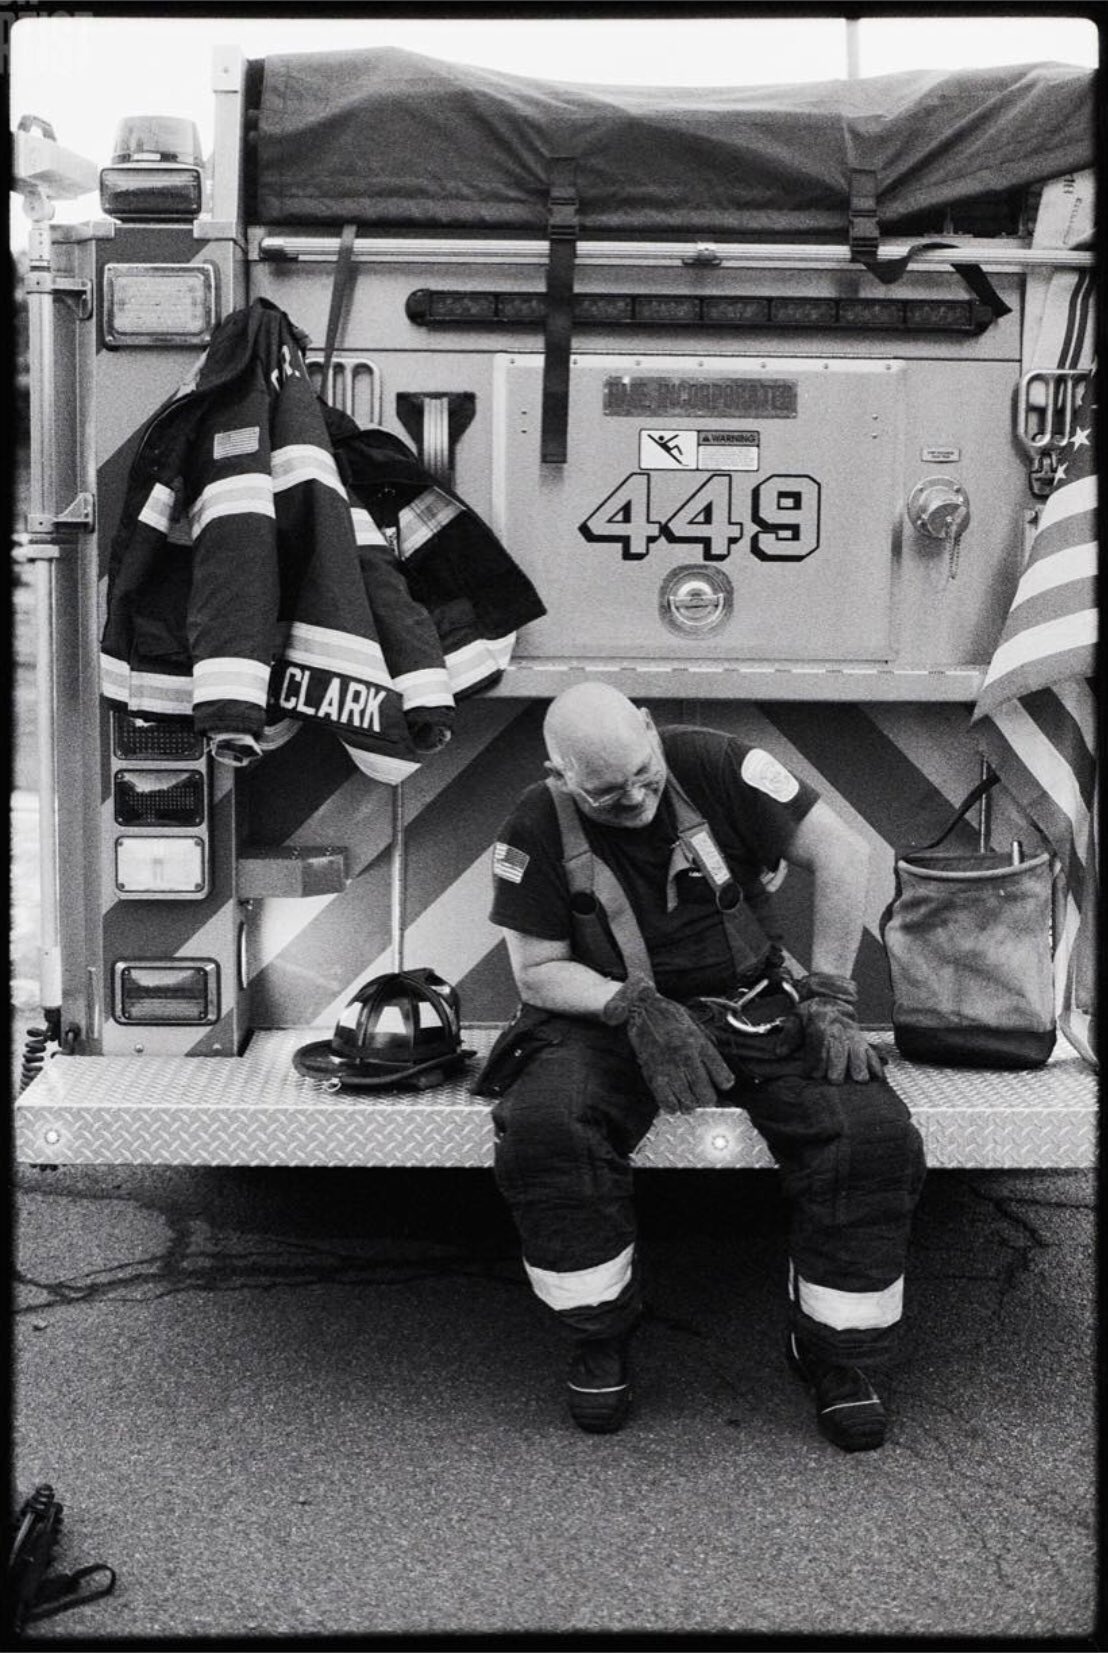 "@MattAngleyPhoto ""Smoked"" Fireman Scott Clark takes a break on the back bumper of a fire engine at a fire scene Camera Canon AE-1 + Canon FD 50mm f/1.4 🎞 Ilford Delta 3200 #ilfordphoto #fridayfavourites #specialistfilm #filmphotography #believeinfilm #delta3200 #ilfordfilm #blackandwhitephotography"